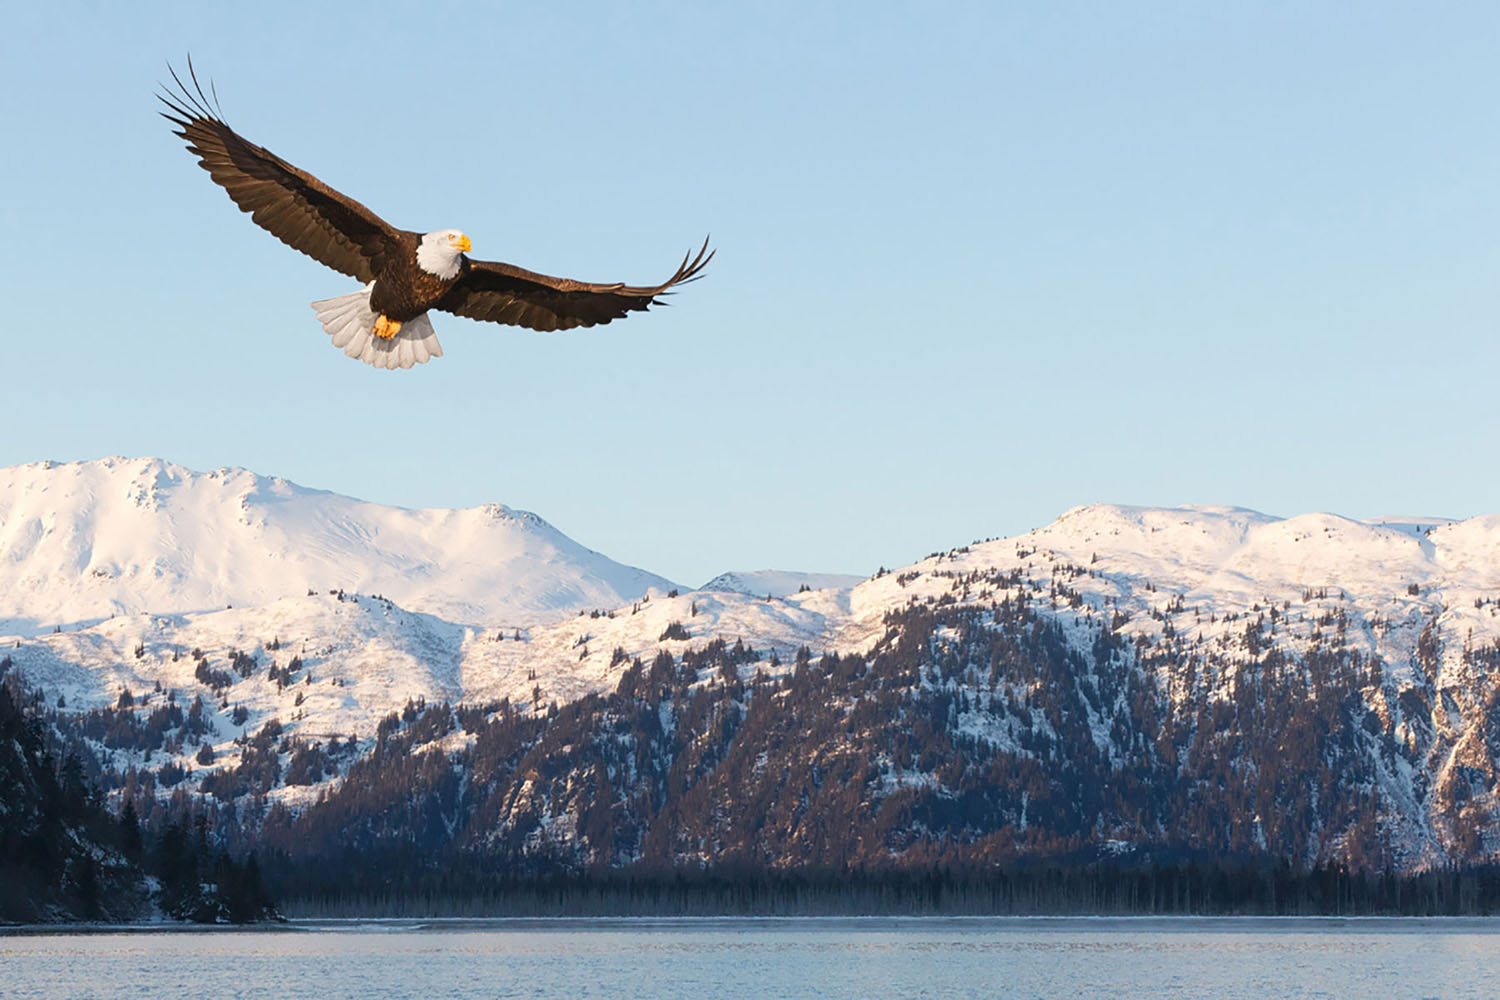 An eagle soars past snowcapped mountains in Alaska.